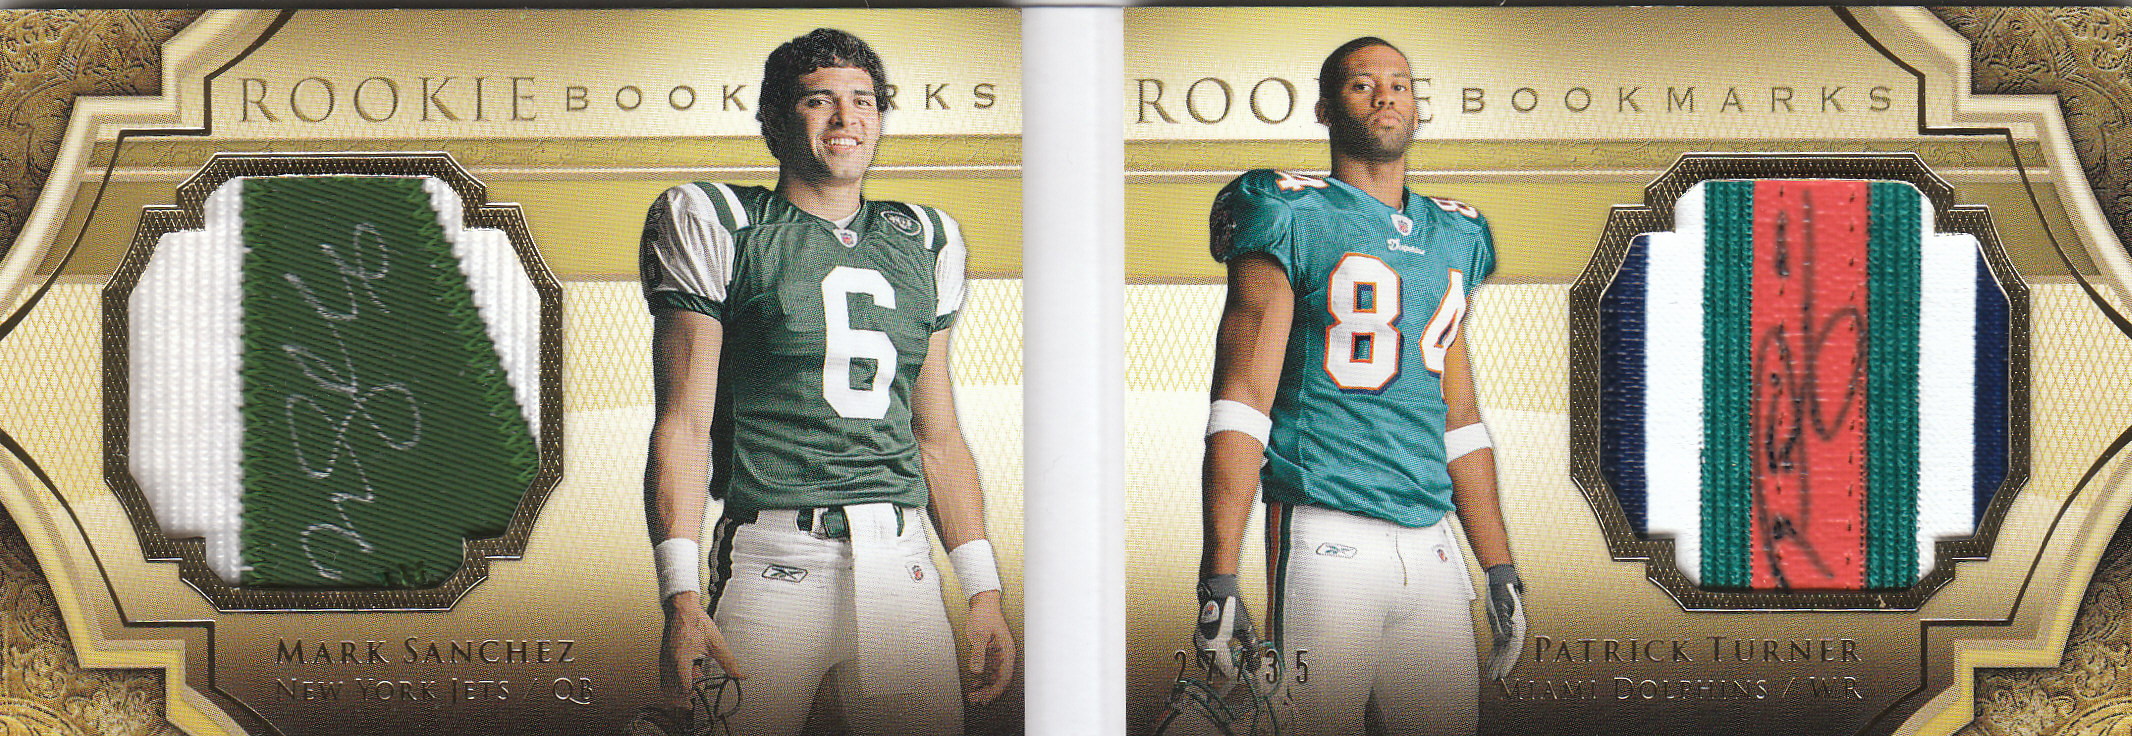 2009 Exquisite Collection Rookie Bookmark Patch Autographs #TS Mark Sanchez/35/Patrick Turner back image